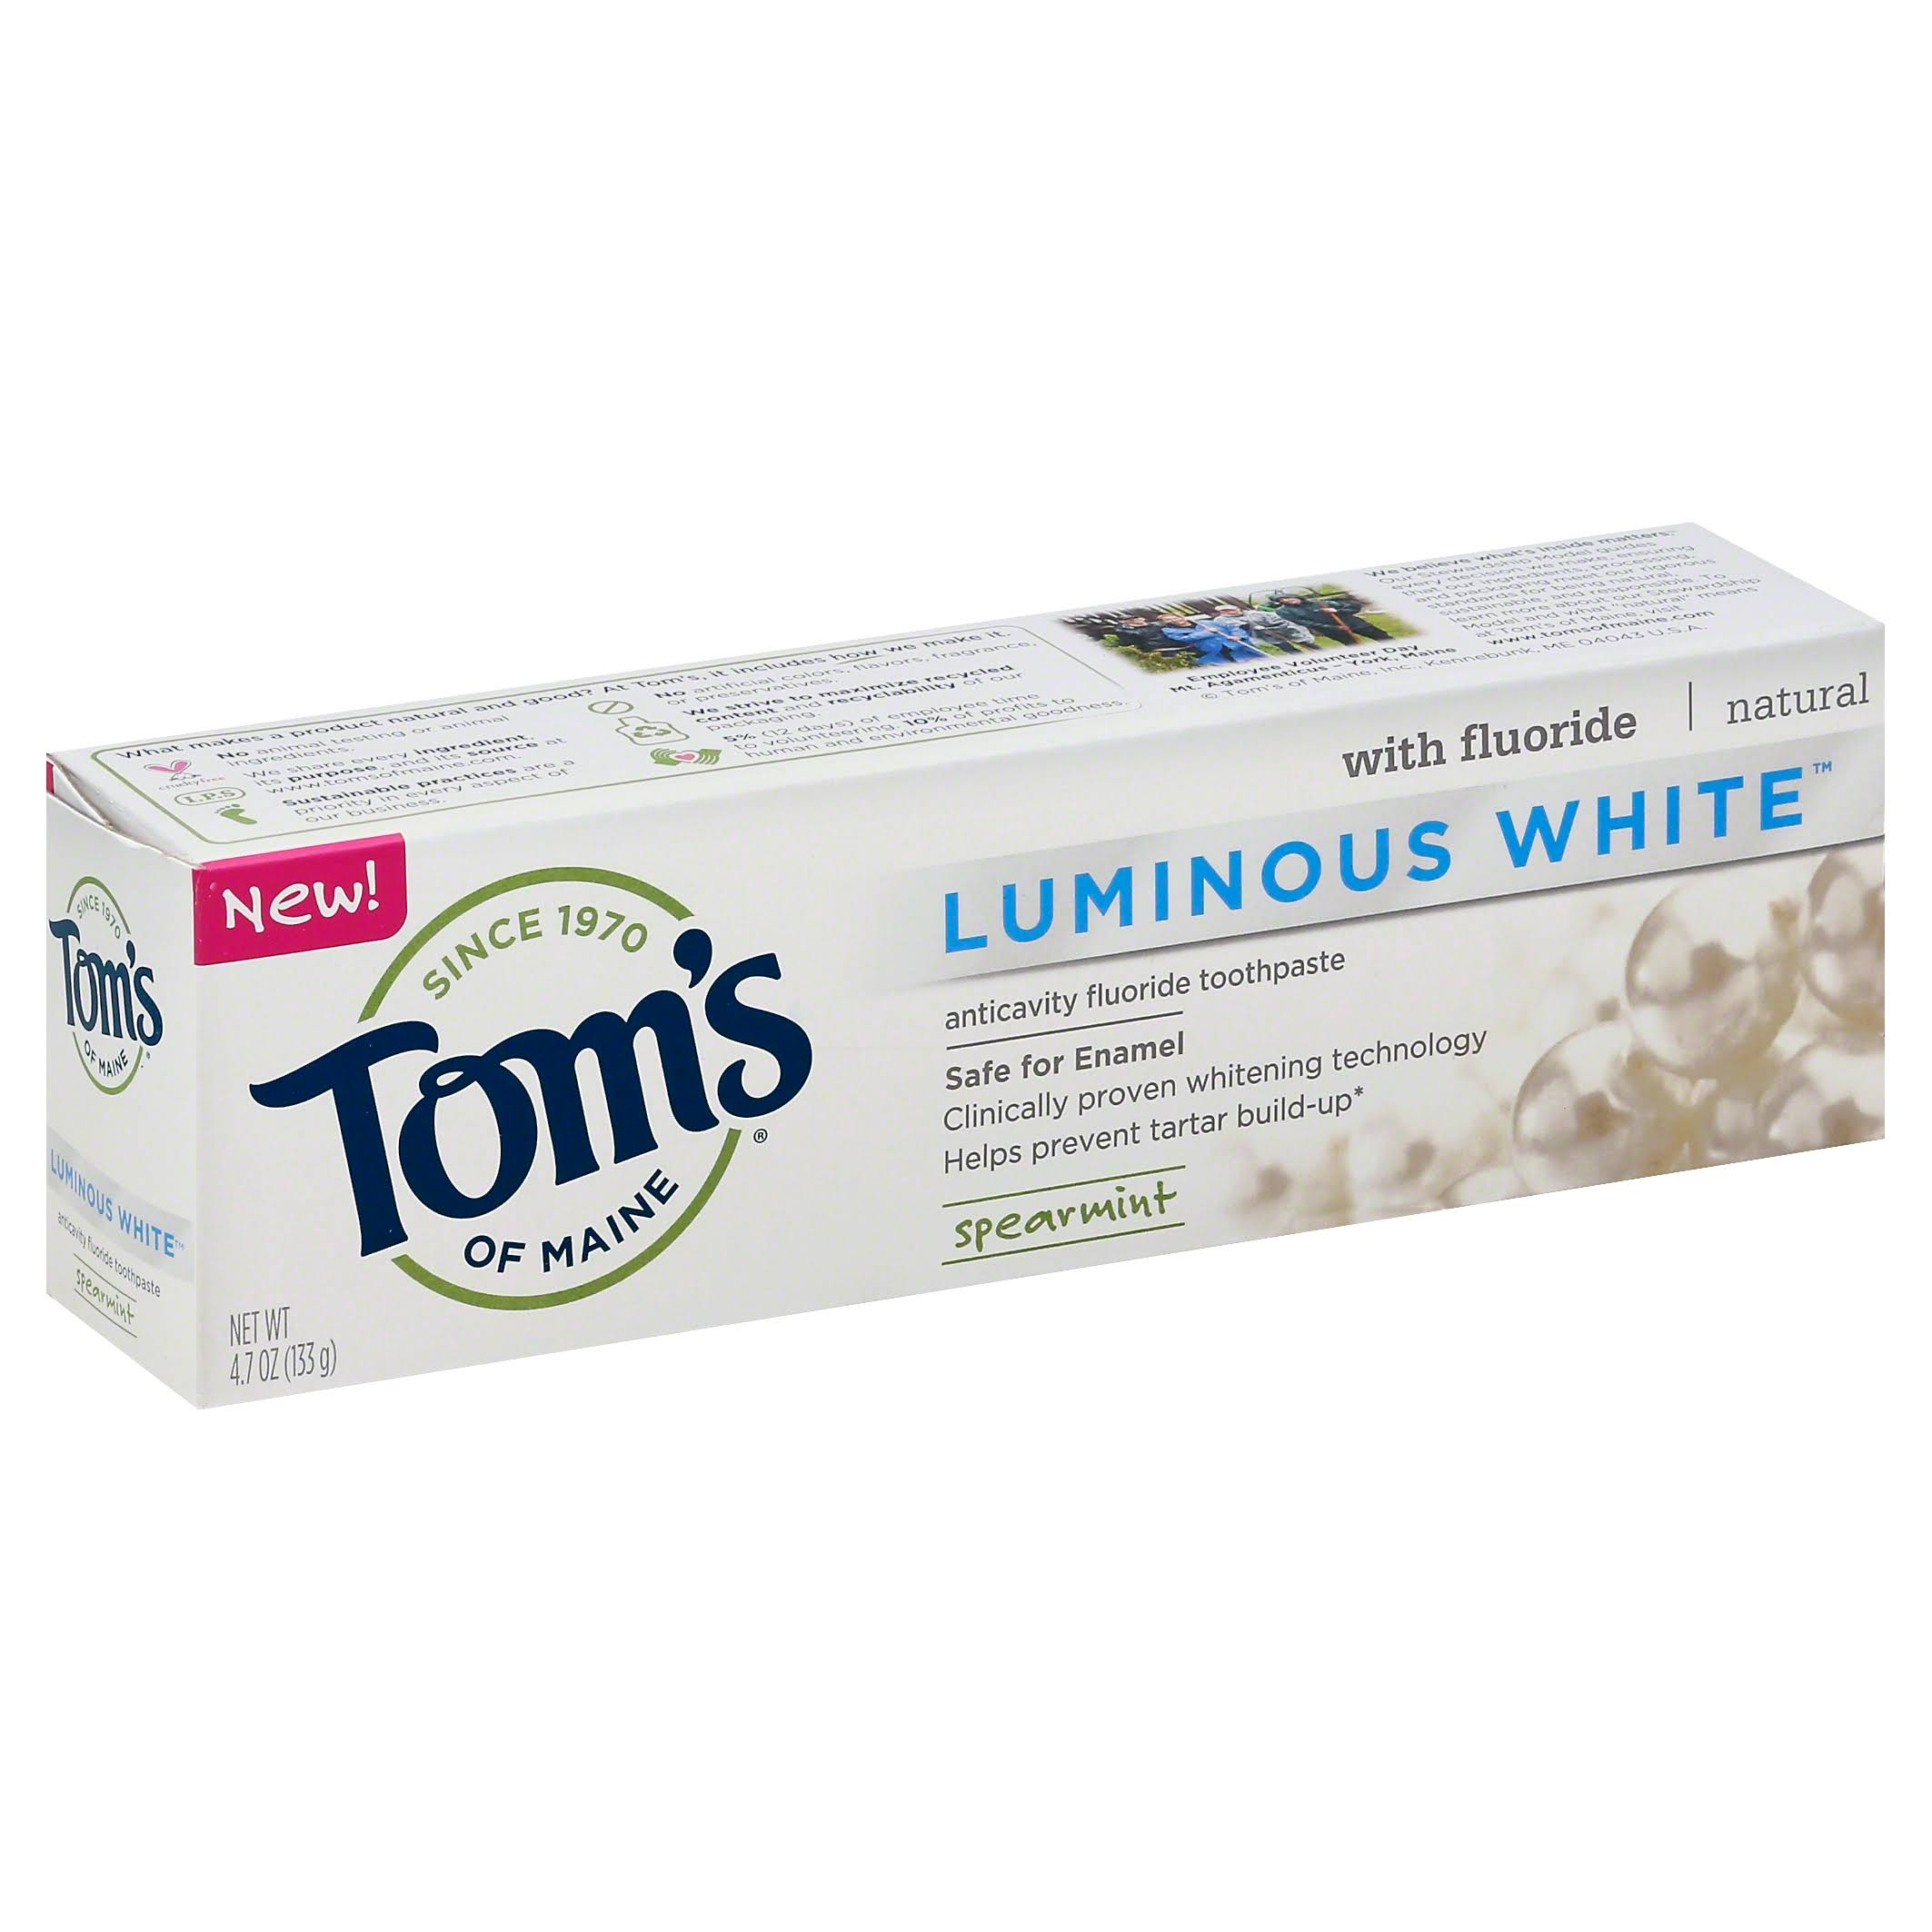 Toms of Maine Toothpaste, Anticavity Fluoride, Luminous White, Spearmint - 4.7 oz